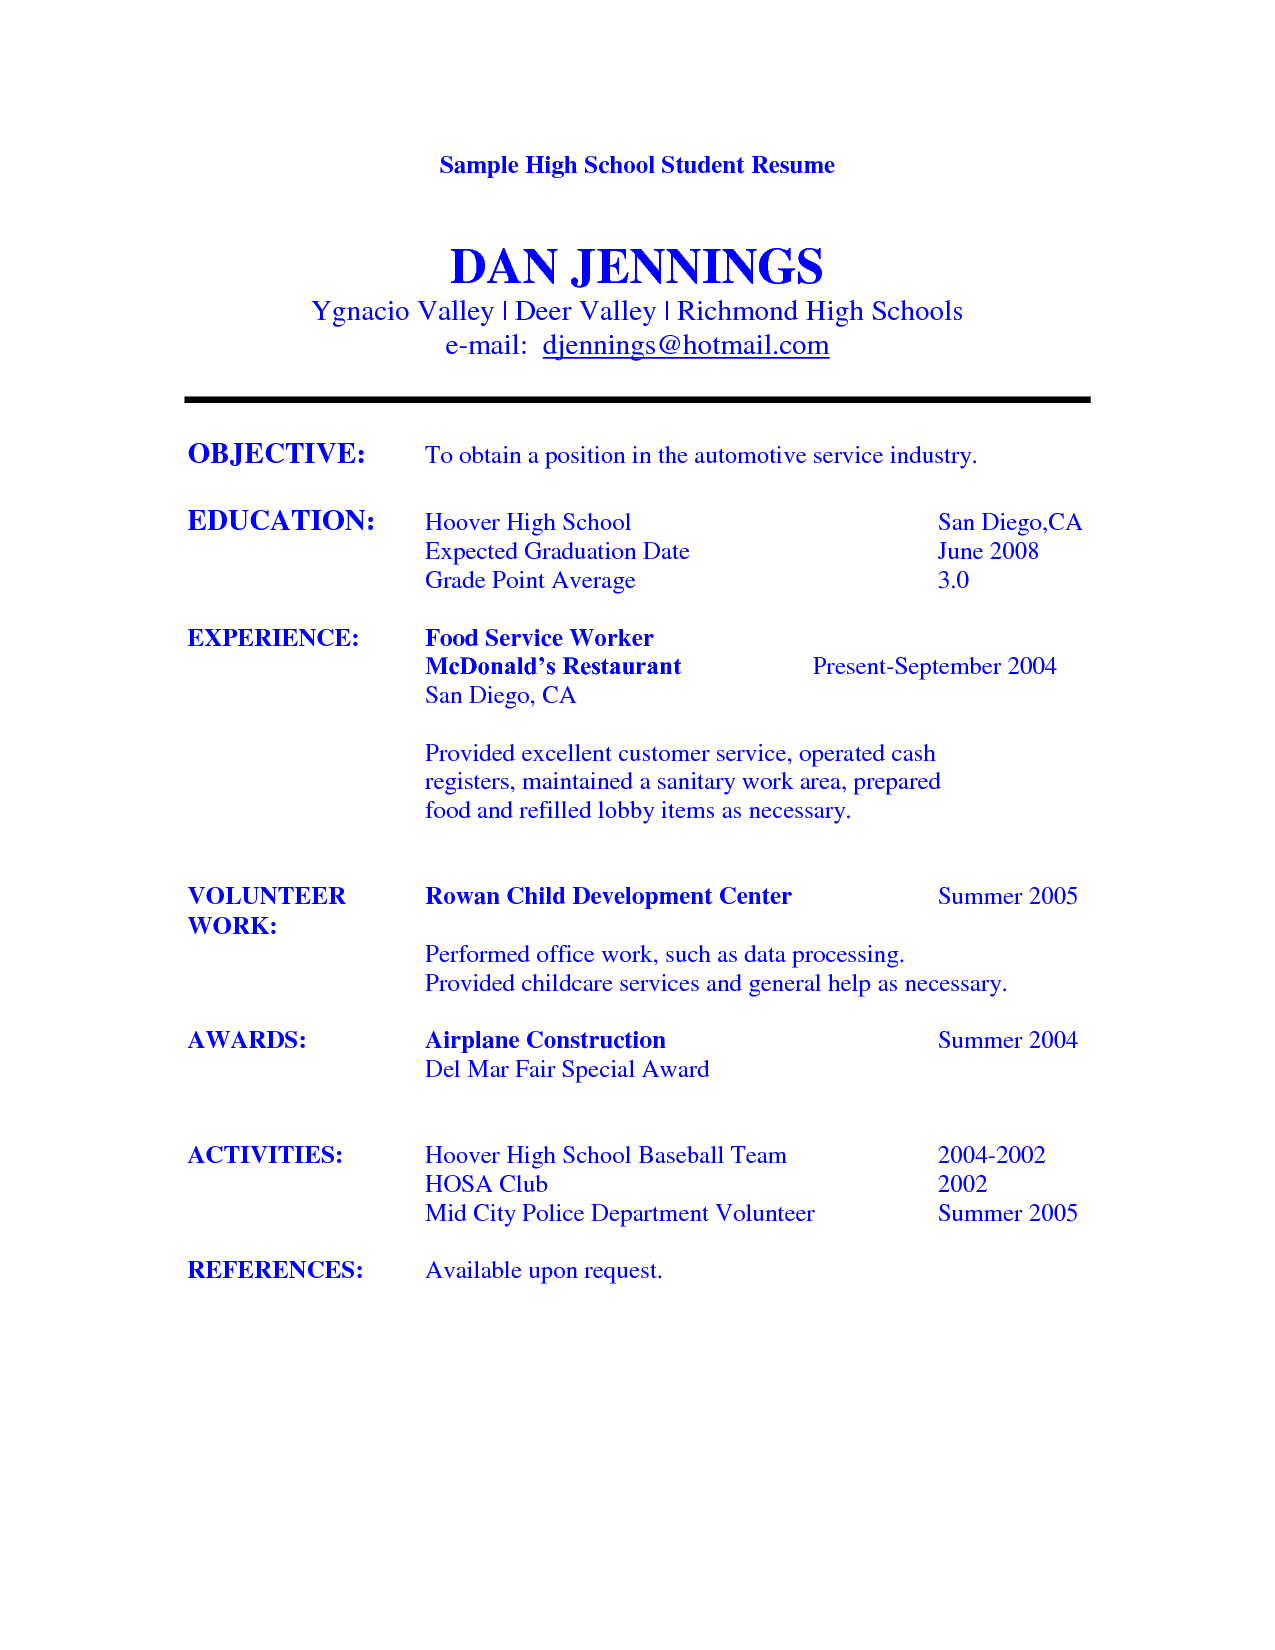 Current College Student Resume Examples Resume Example For High School Student Sample Resumes  Httpwww